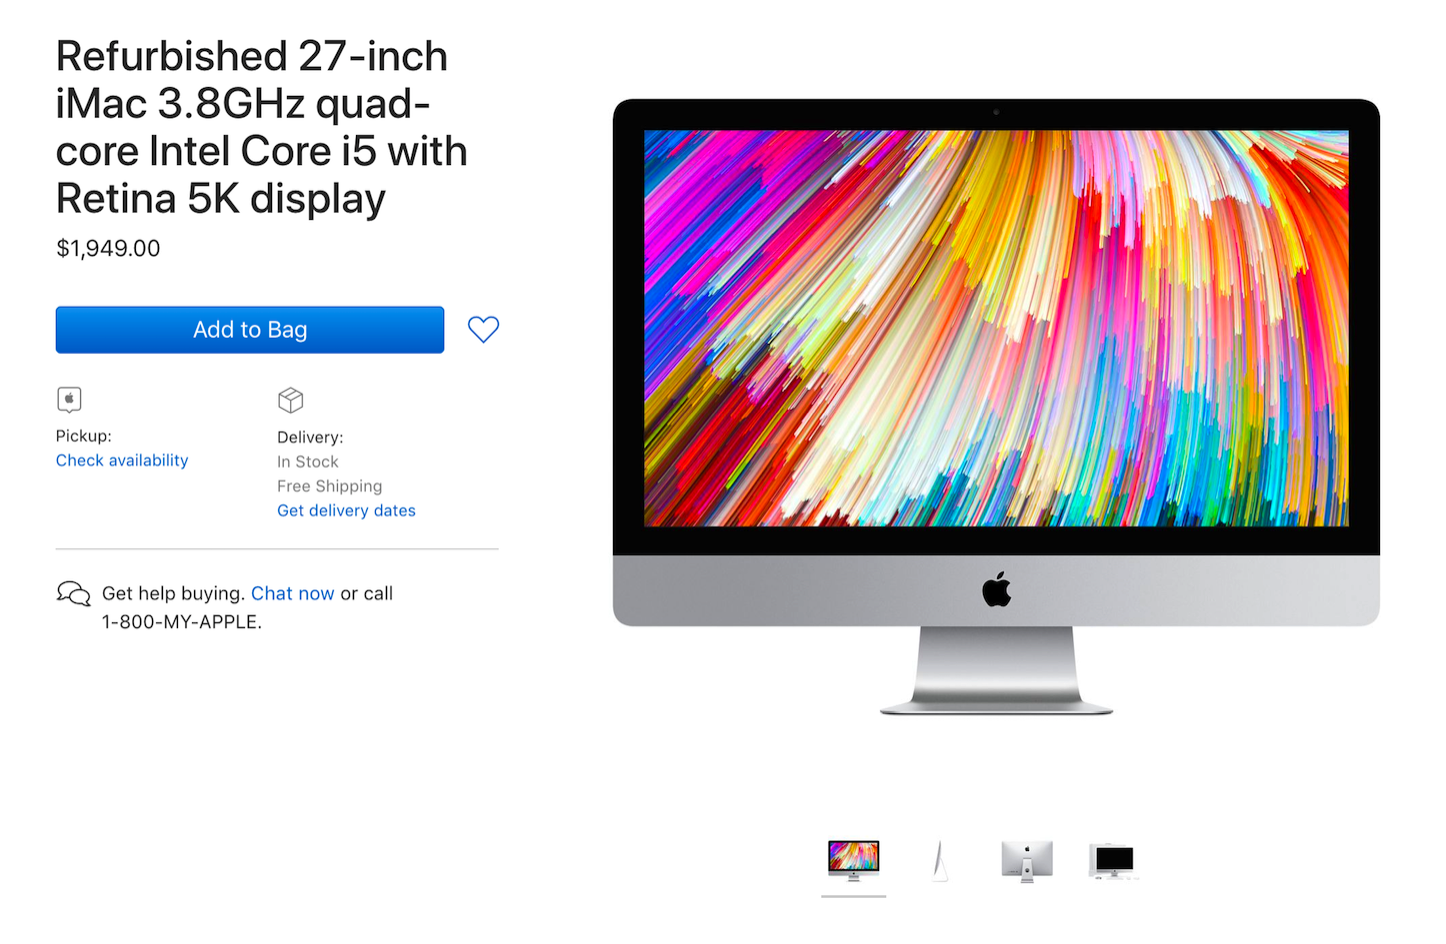 Refurbished iMac 5K